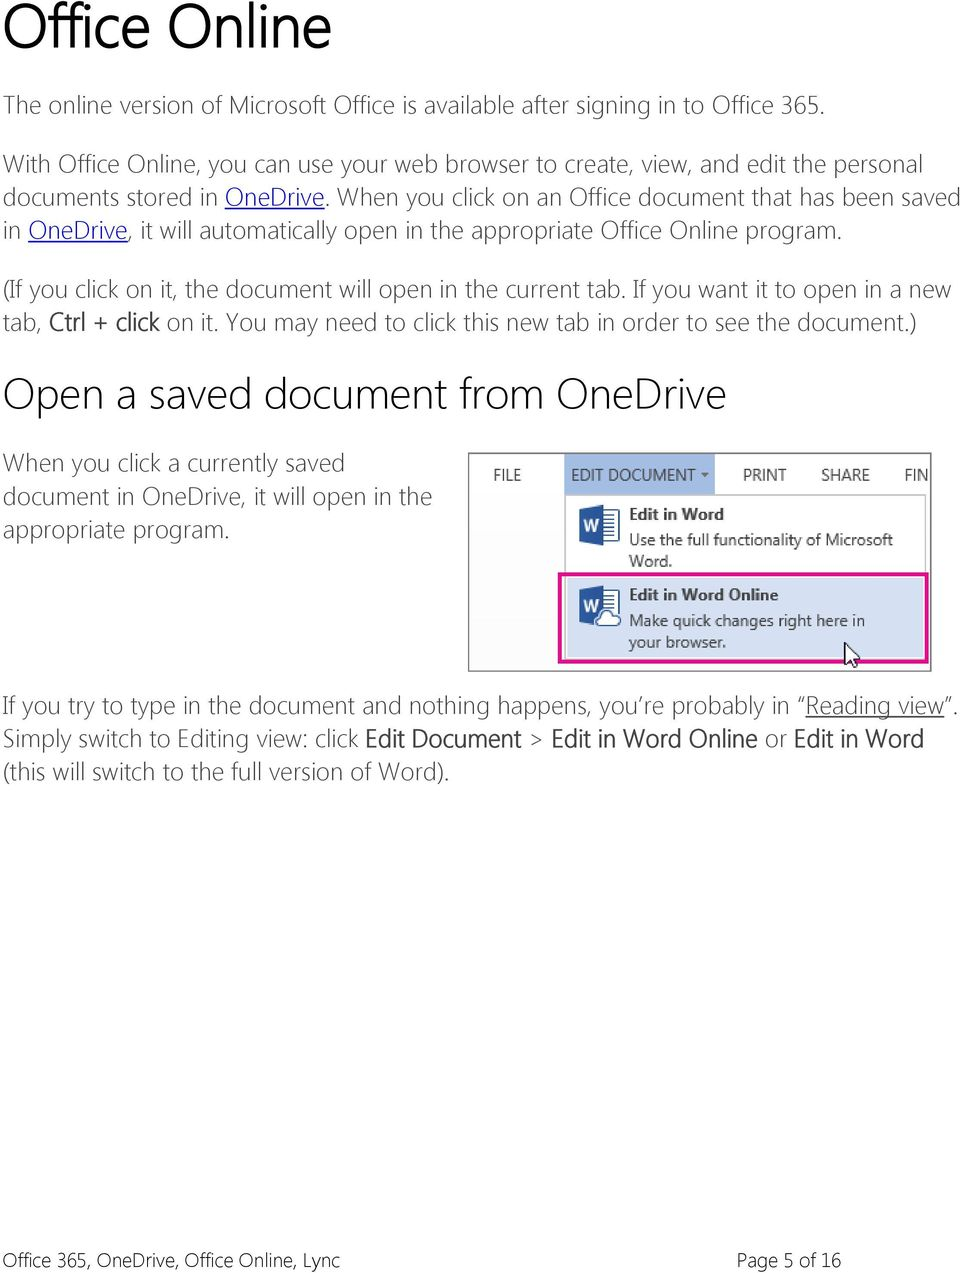 When you click on an Office document that has been saved in OneDrive, it will automatically open in the appropriate Office Online program.